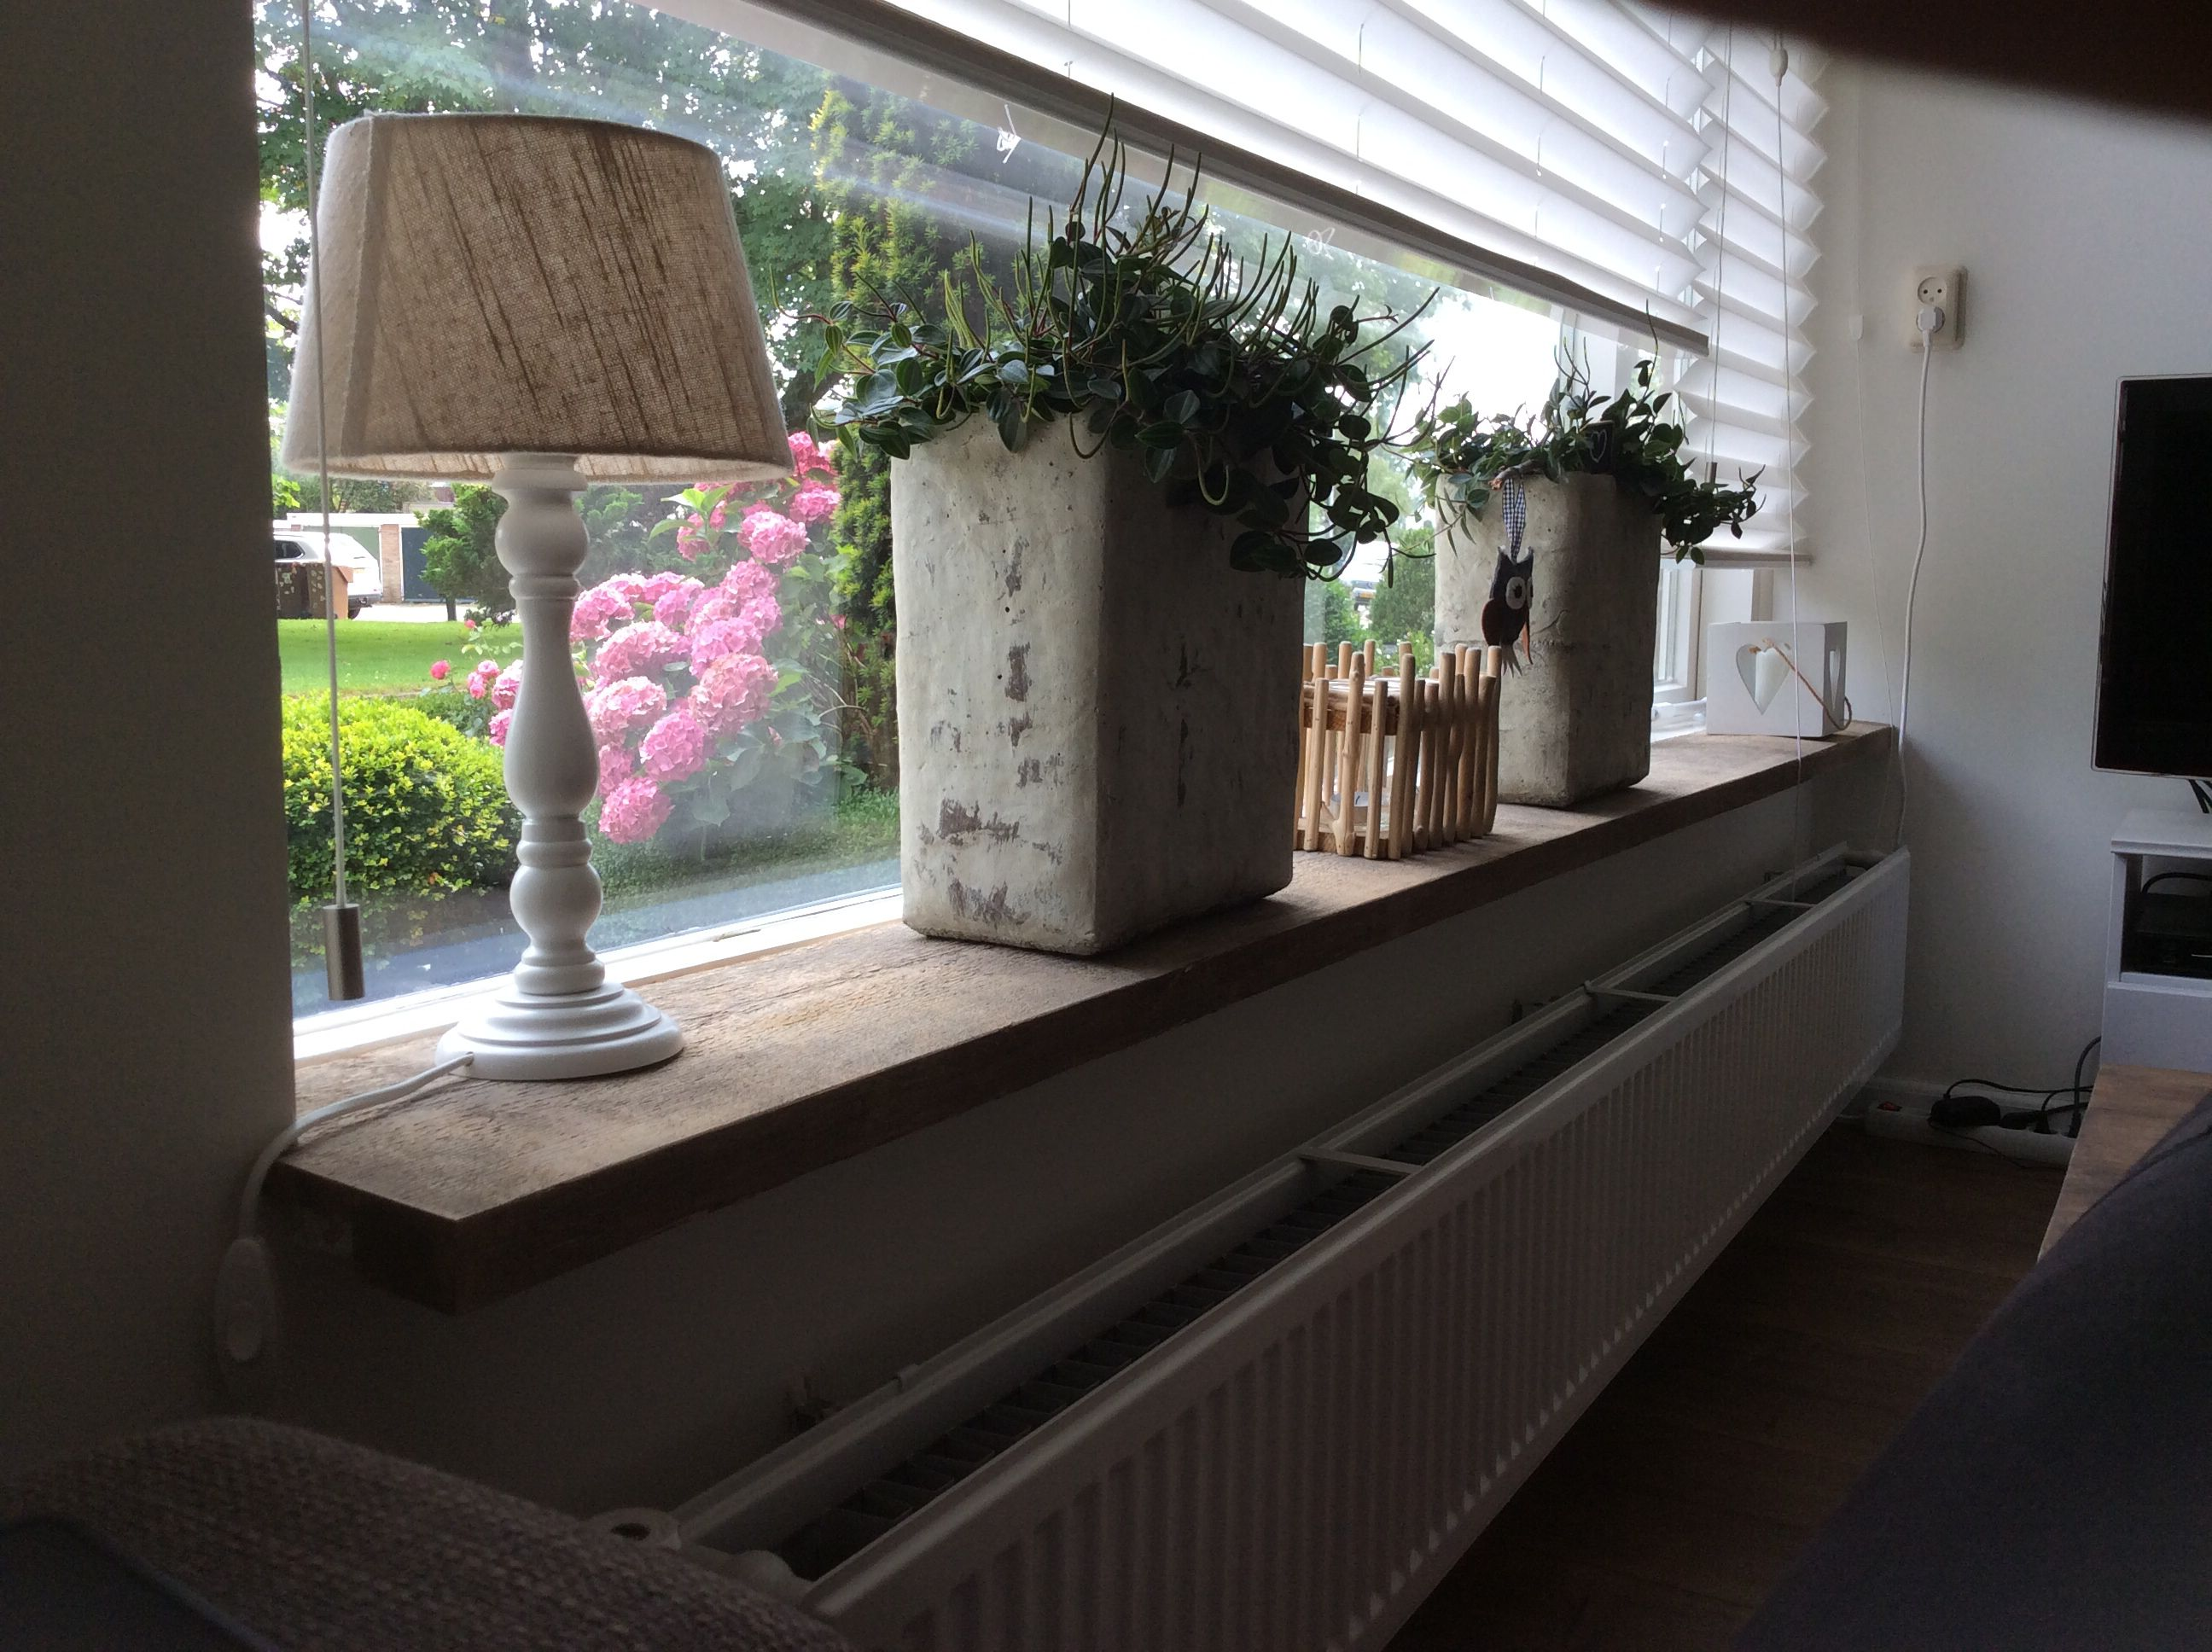 Vensterbank Decoratie Groot Raam Steigerhout Vensterbank Vensterbank Pinterest